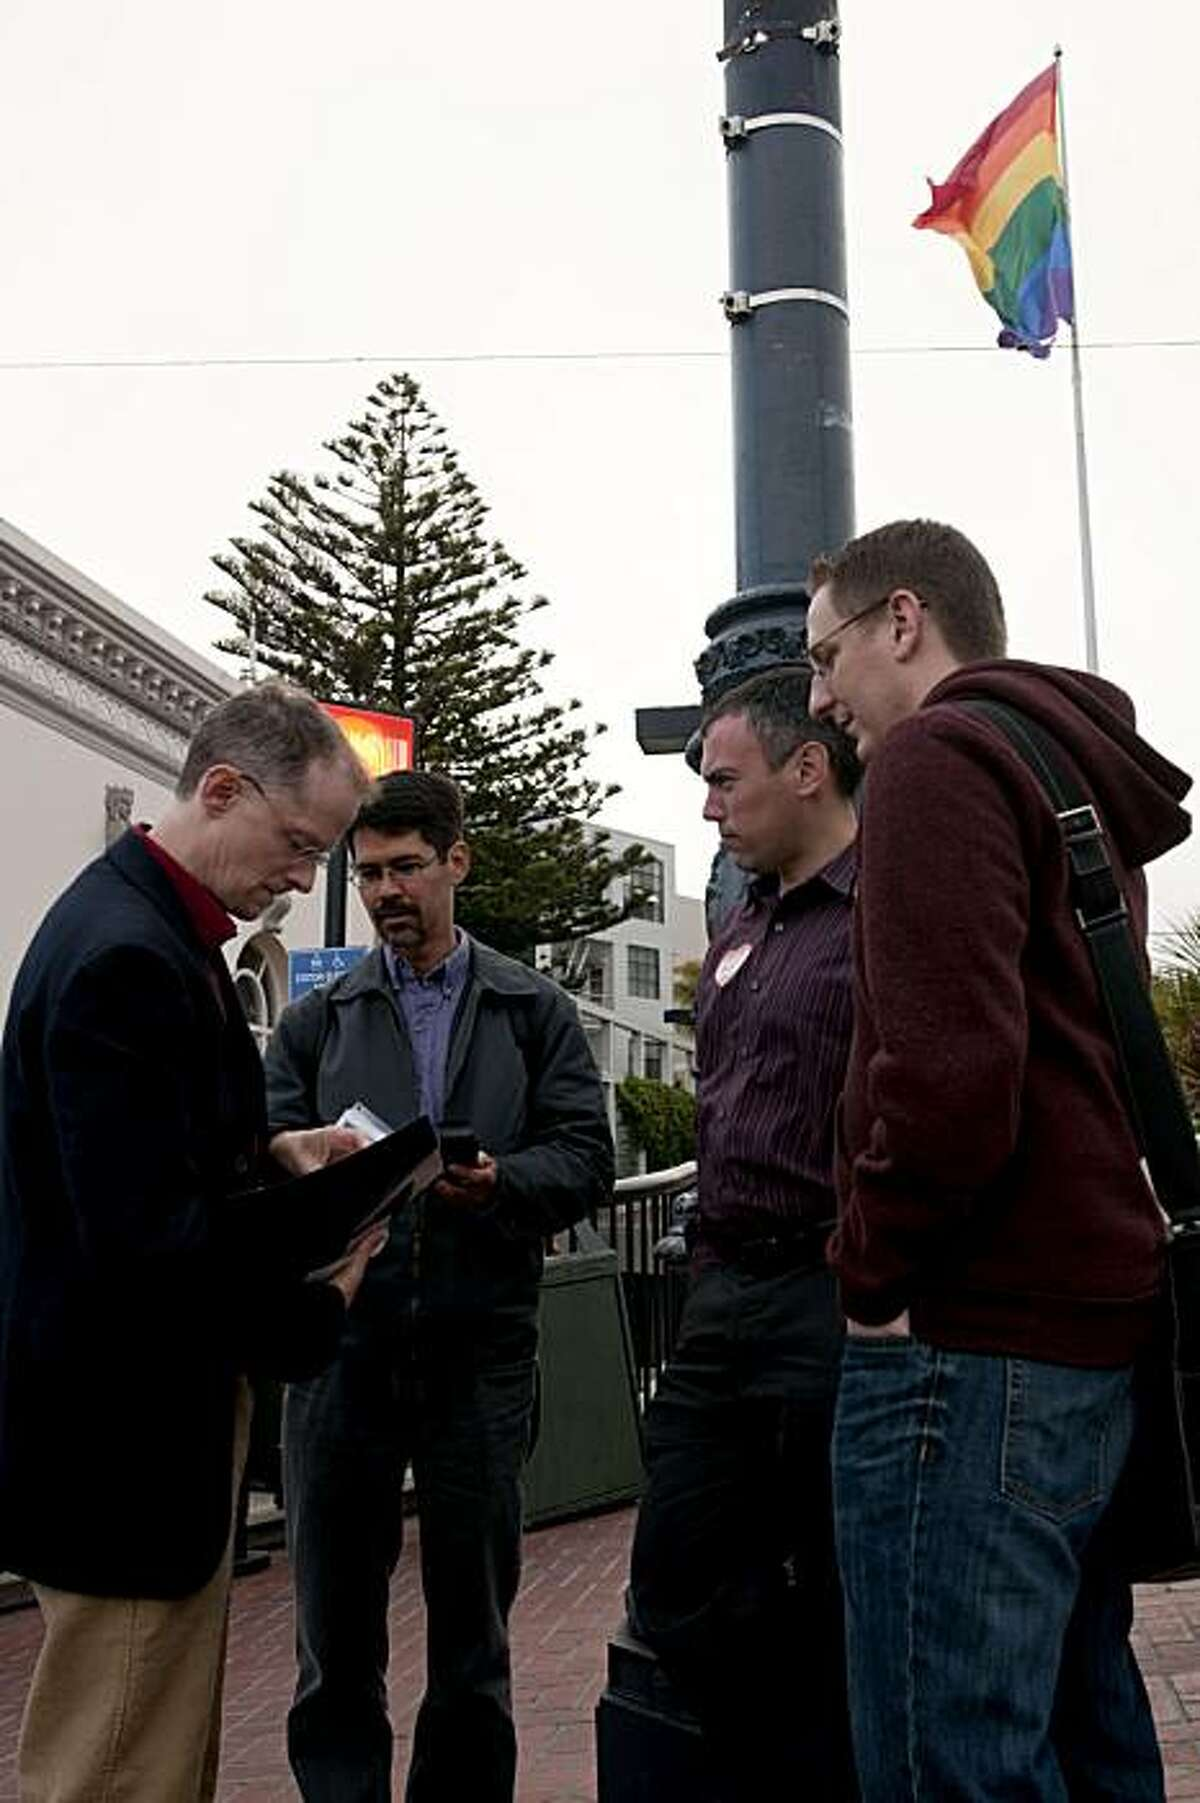 John Lewis, Stuart Gaffney, Ian Hart and Eric Ross discuss today's ruling and share their reactions from the stay that was put on same sex marriages in San Francisco, Calif., on Wednesday, August 16, 2010.